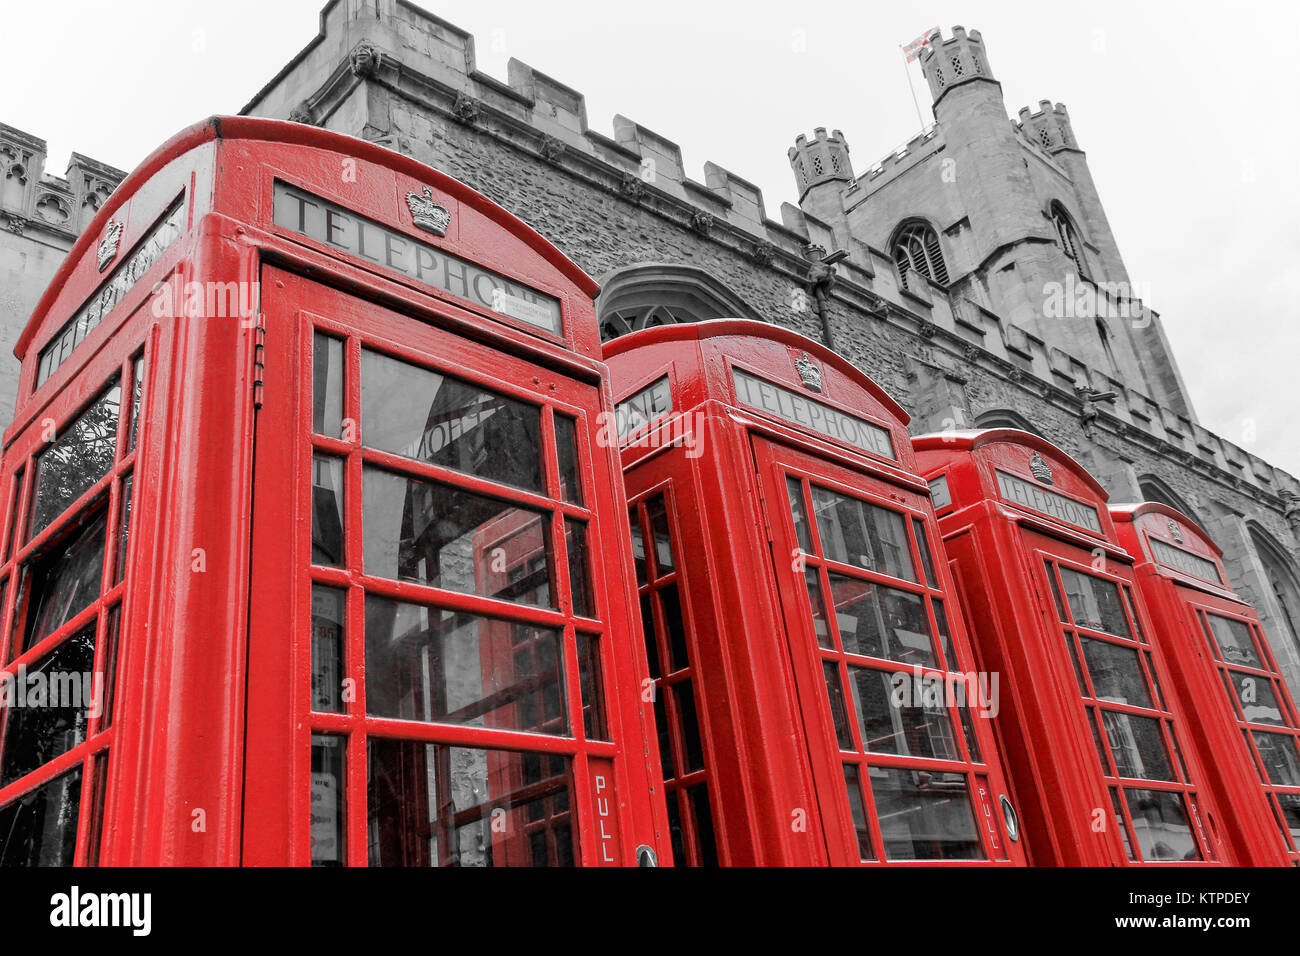 Cambridge, England - 04 29 2017: A row of four classic K6 red phone boxes standing aside Great St. Mary's Church, - Stock Image